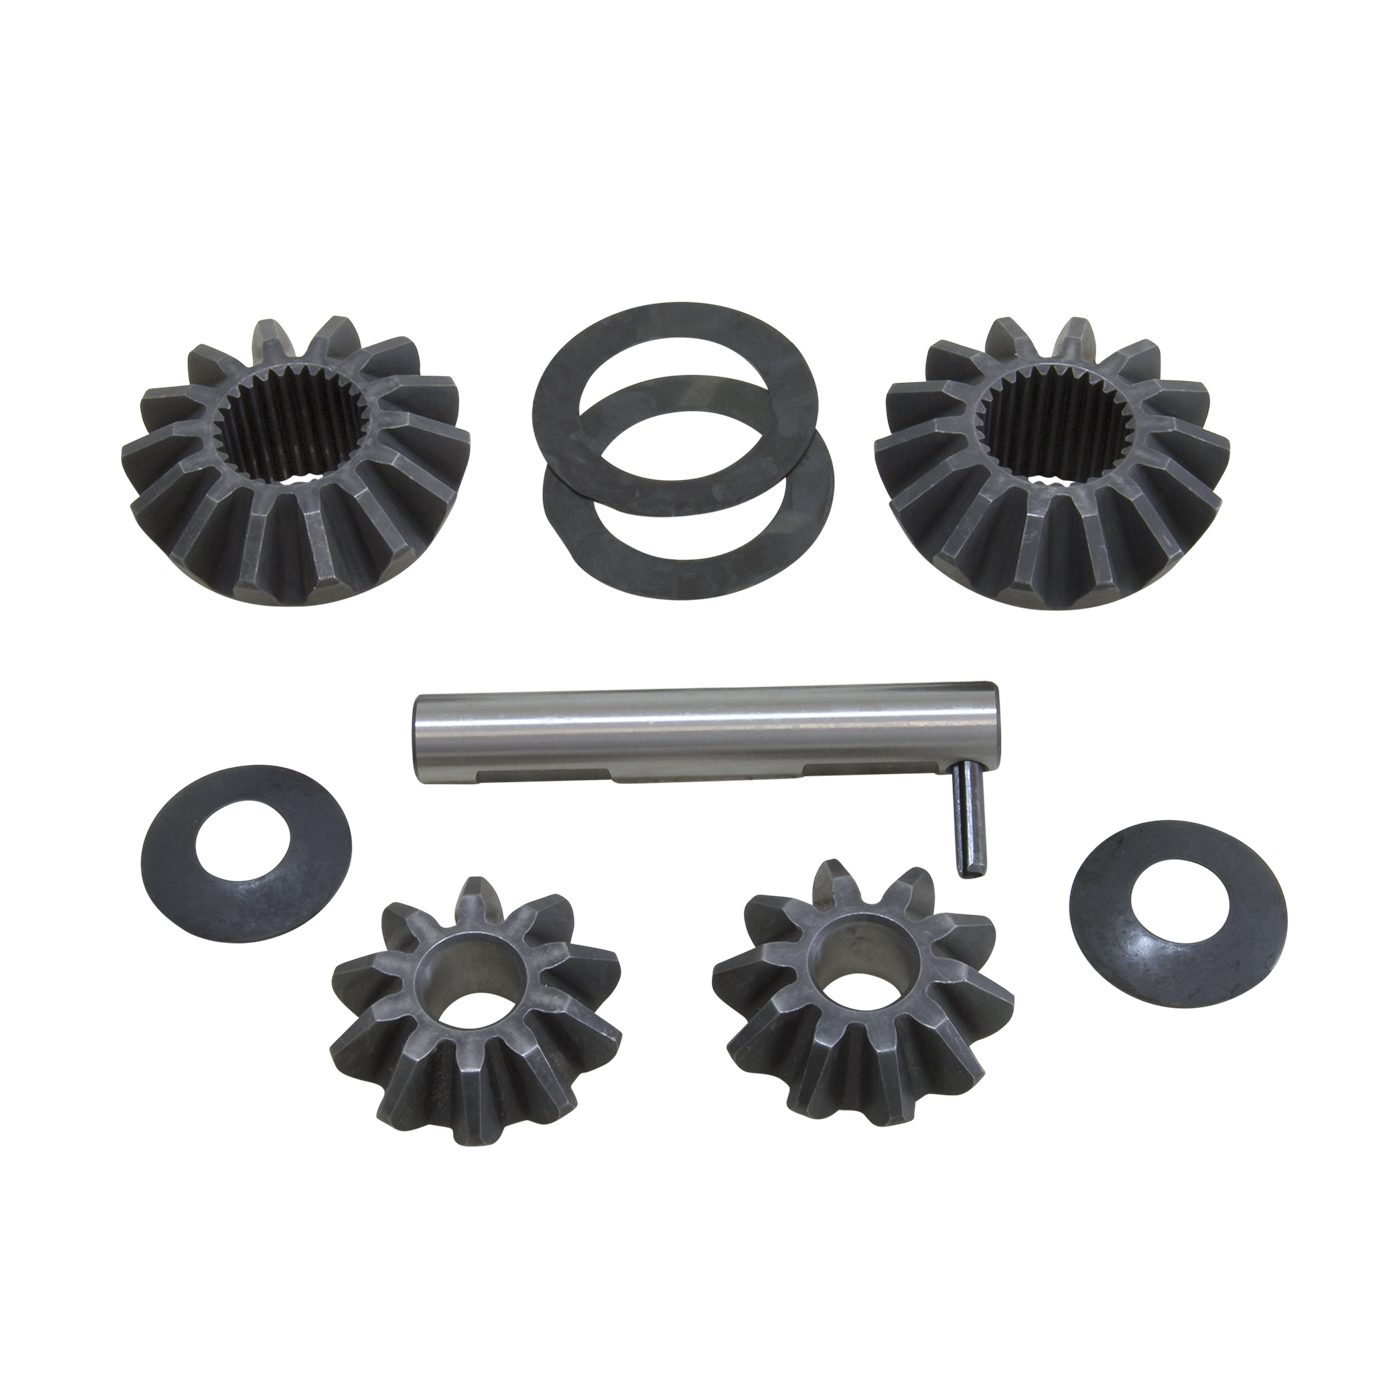 YPKD30-S-27 - Yukon replacement standard open spider gear kit for Dana 30 with 27 spline axles